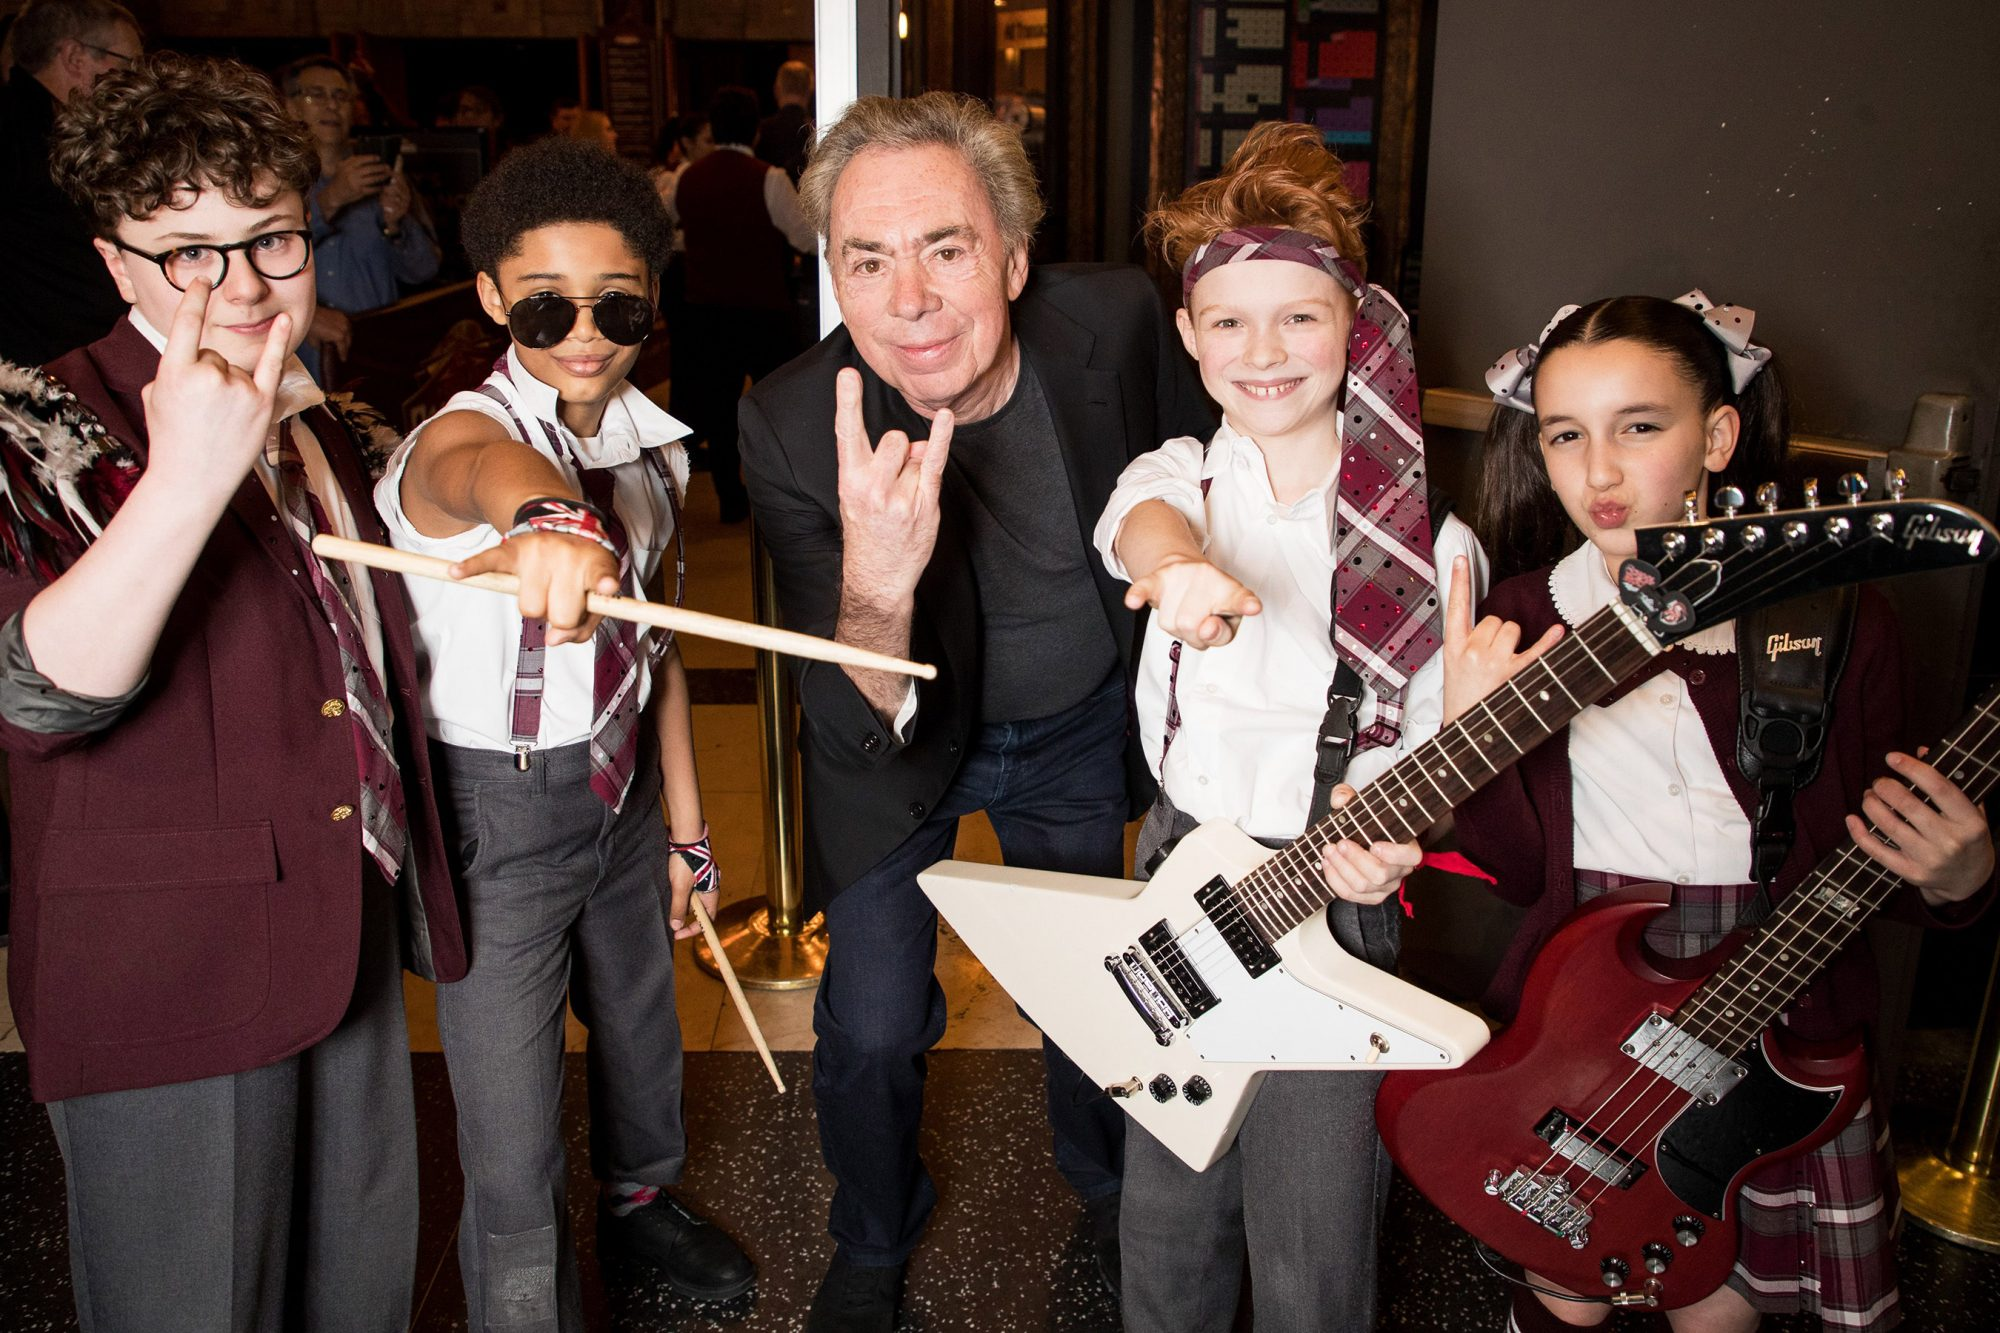 'School of Rock' Opening Night, Pantages Theatre, Los Angeles, USA - 03 May 2018